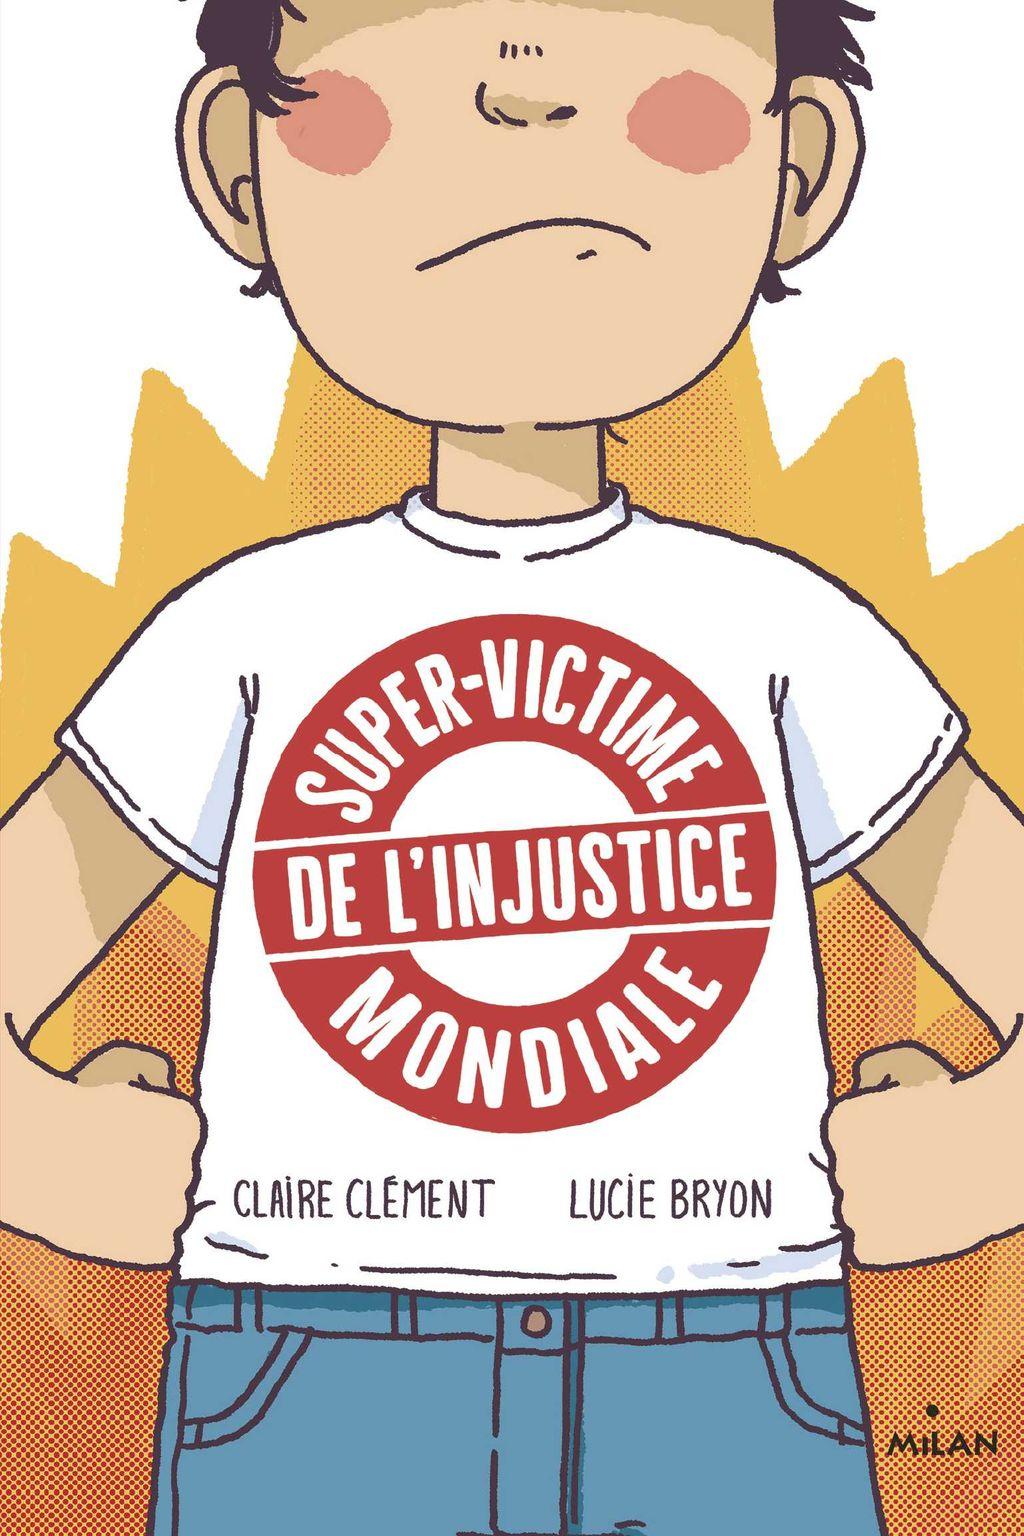 « Super-victime de l'injustice mondiale » cover